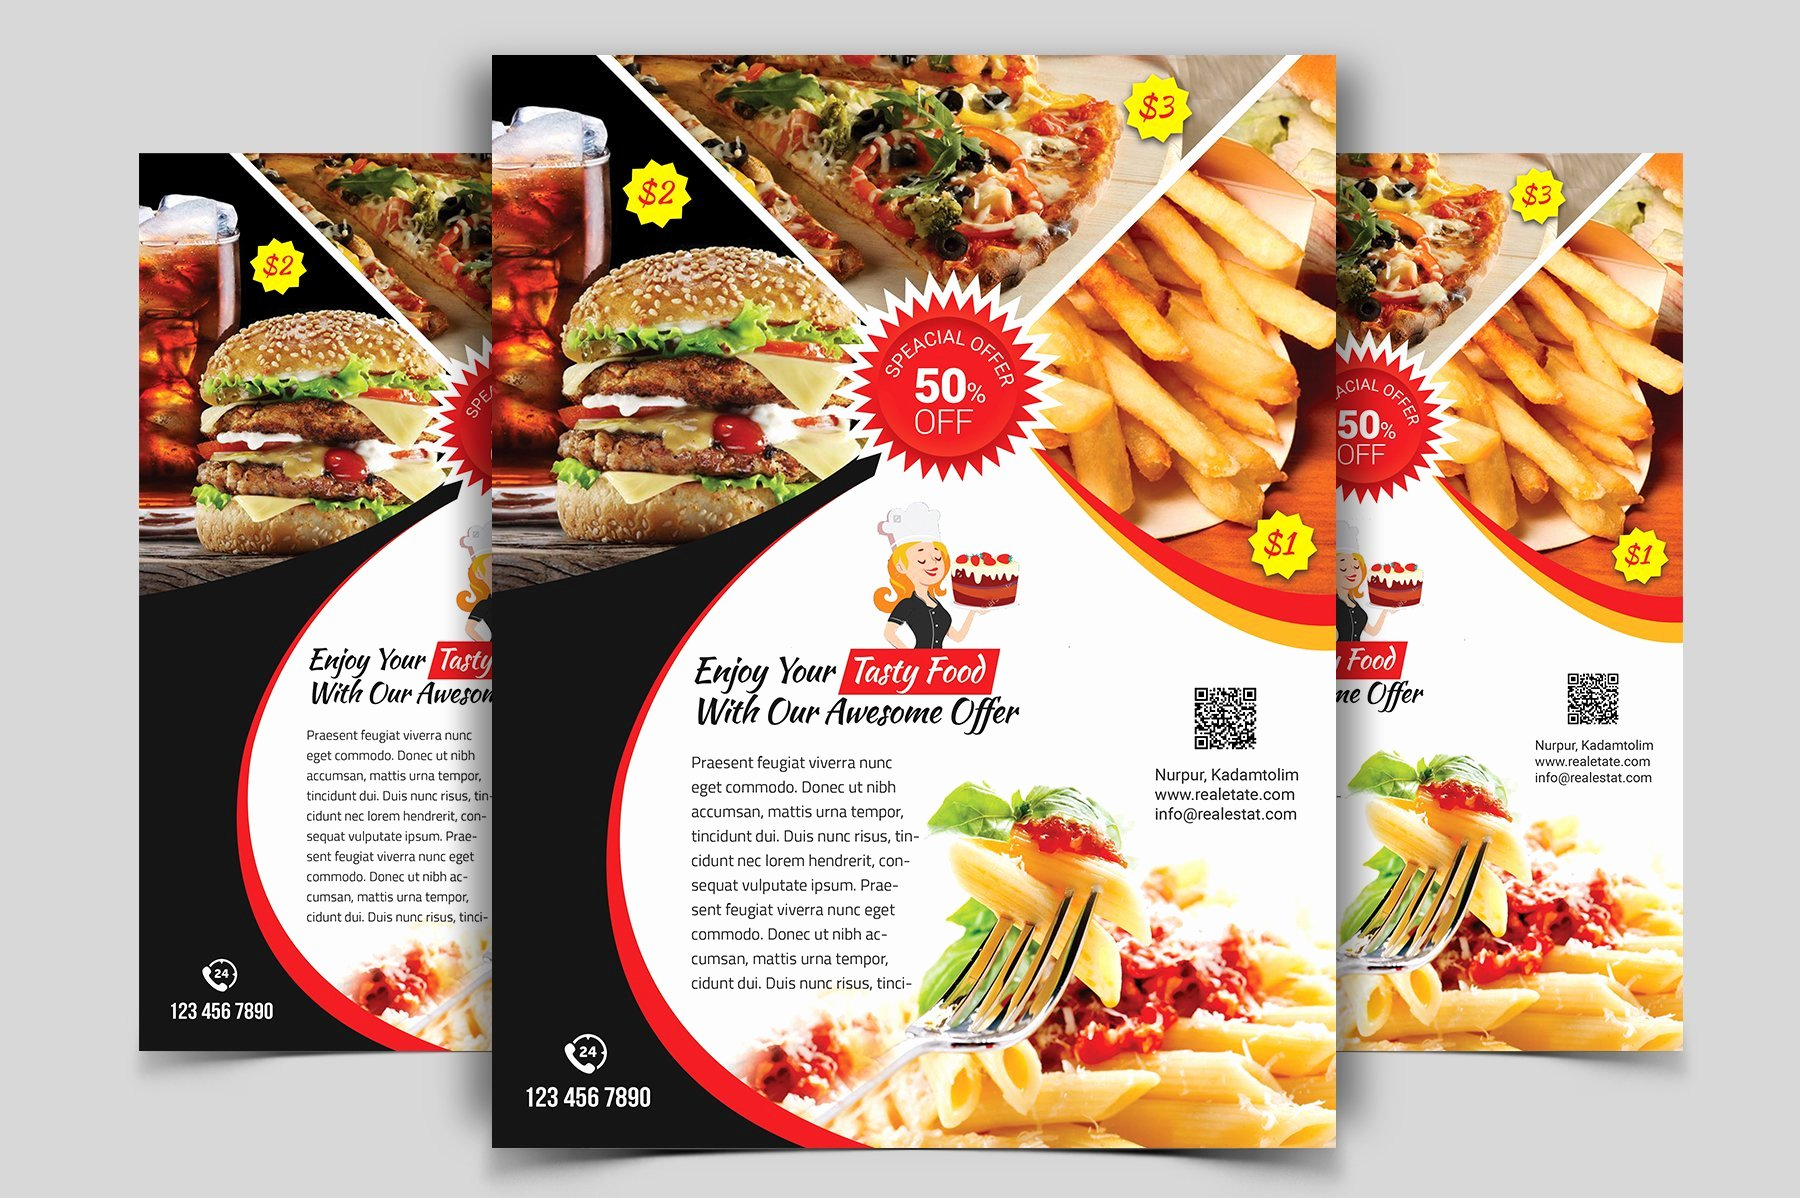 Restaurant Flyer Templates Free Elegant Restaurant Flyer Vol 01 Flyer Templates Creative Market